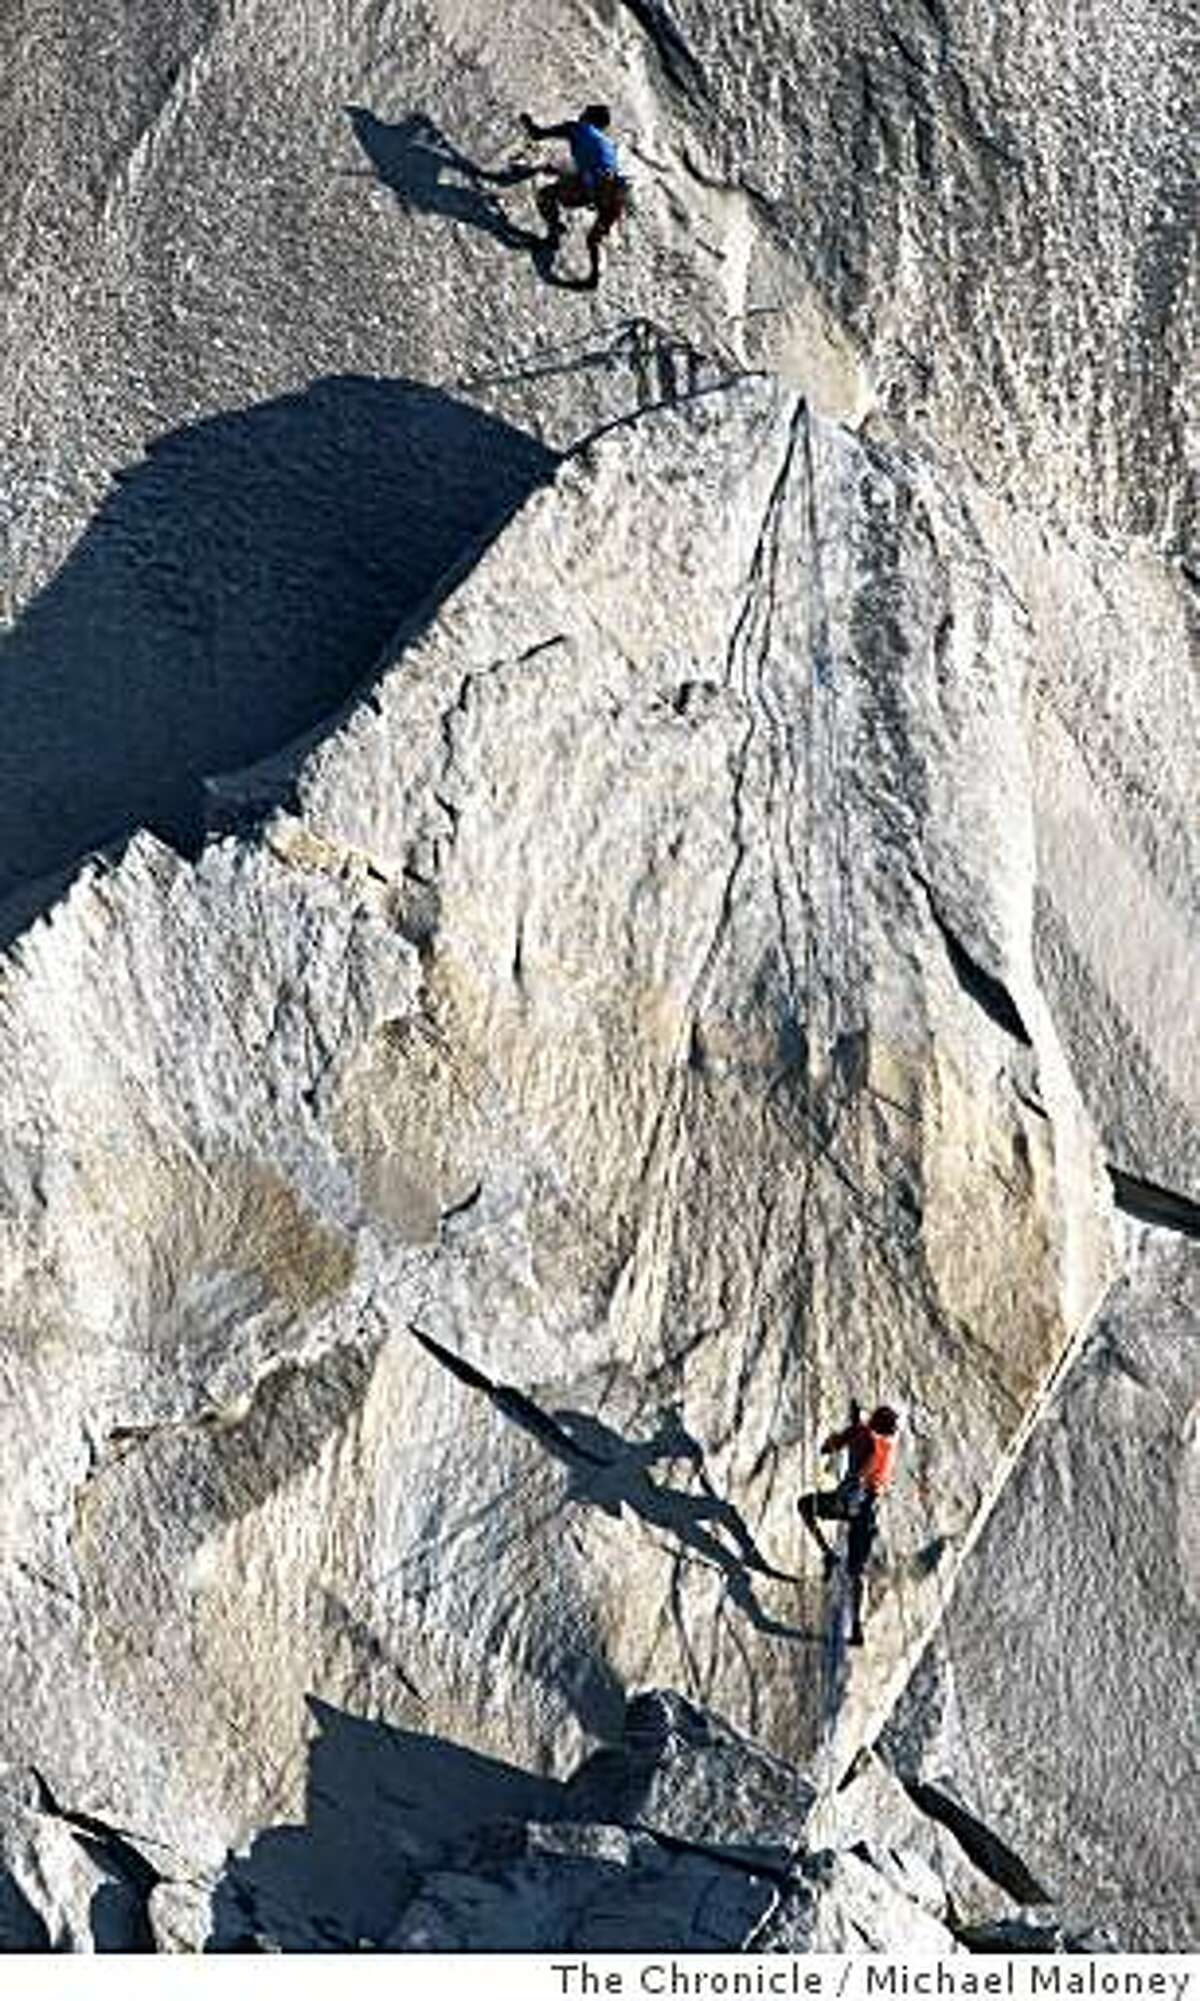 Speed climbers Yuji Hirayama, top, of Japan and Hans Florine, of Lafayette, Calif., work their way up the Texas Flake to set a new record of climbing the Nose route of El Capitan in Yosemite National Park on July 2, 2008. Their time was 2 hours, 43 minutes and 33 seconds, beating the previous record of 2 hours and 45 minutes set by German brothers Thomas and Alexander Huber last October.Photo by Michael Maloney / The Chronicle